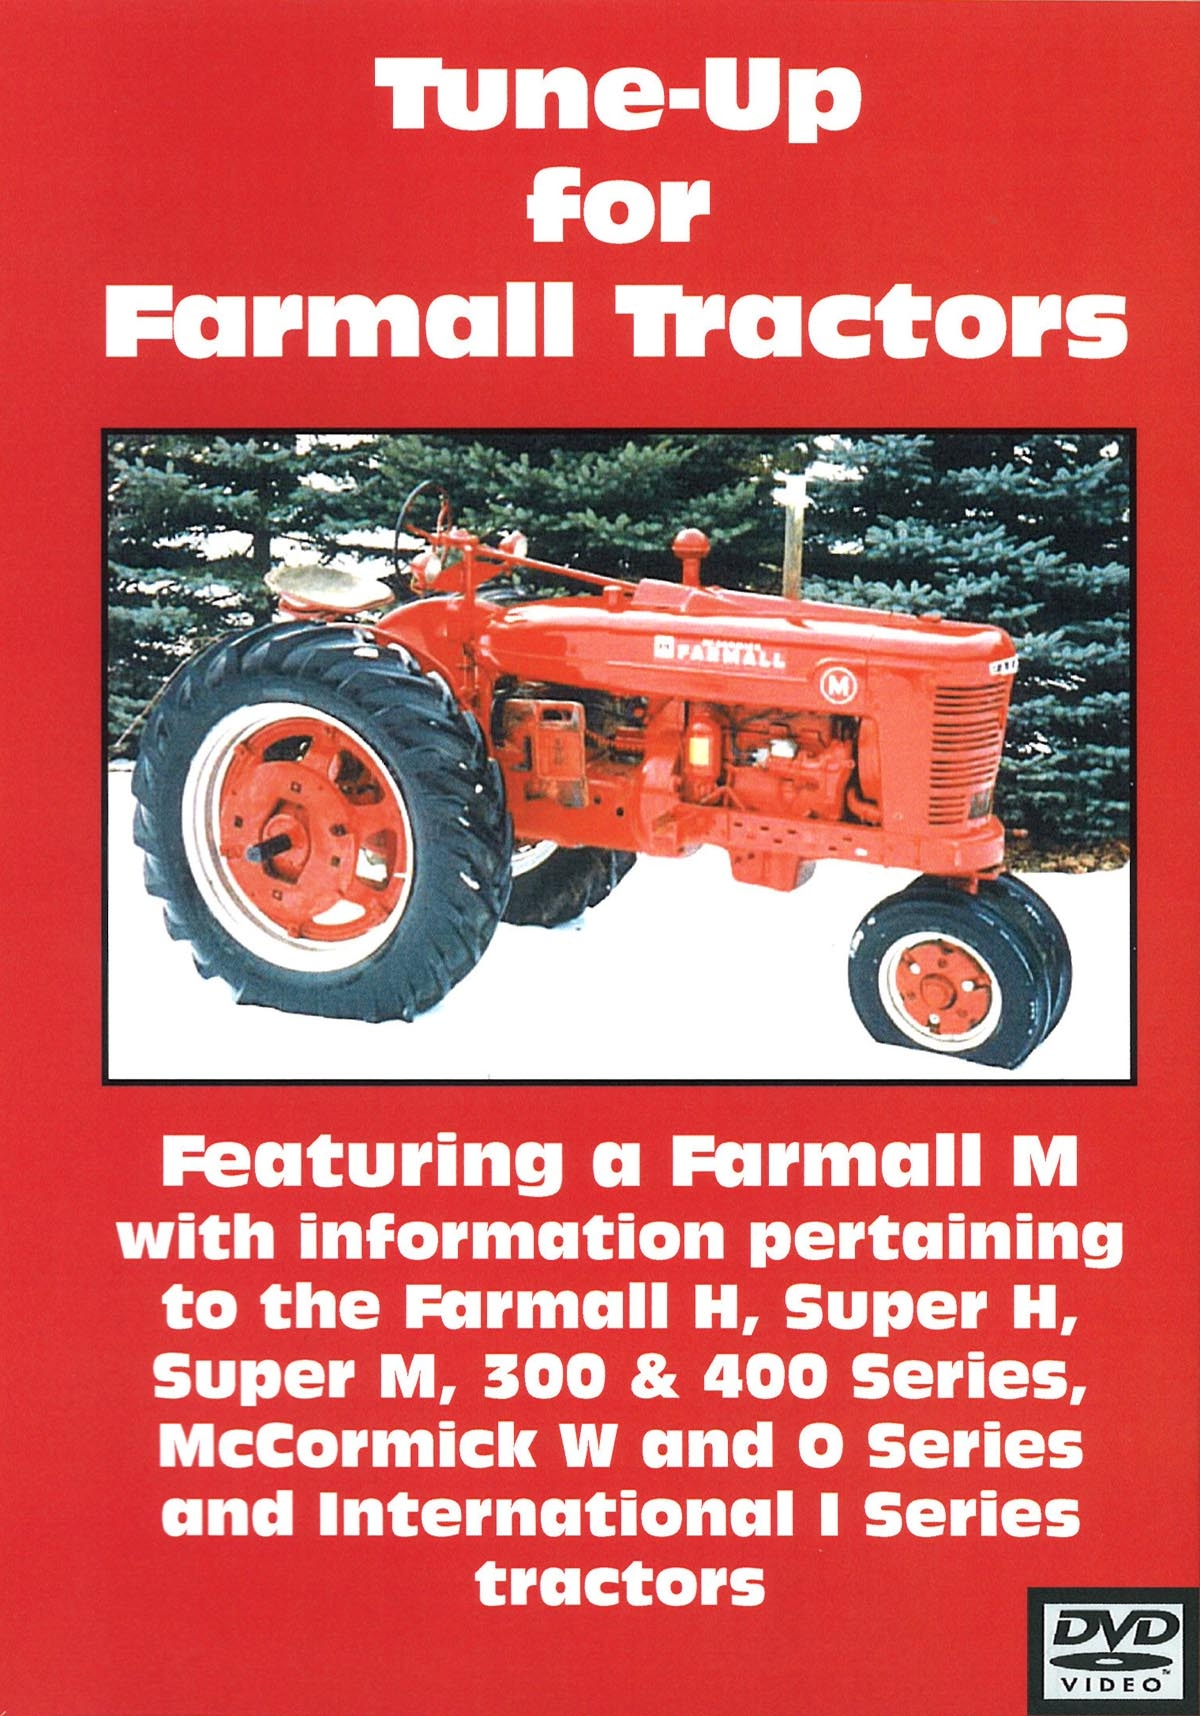 hight resolution of ih blue ribbon service manual for the case ih 500 crawler m md model tractor s